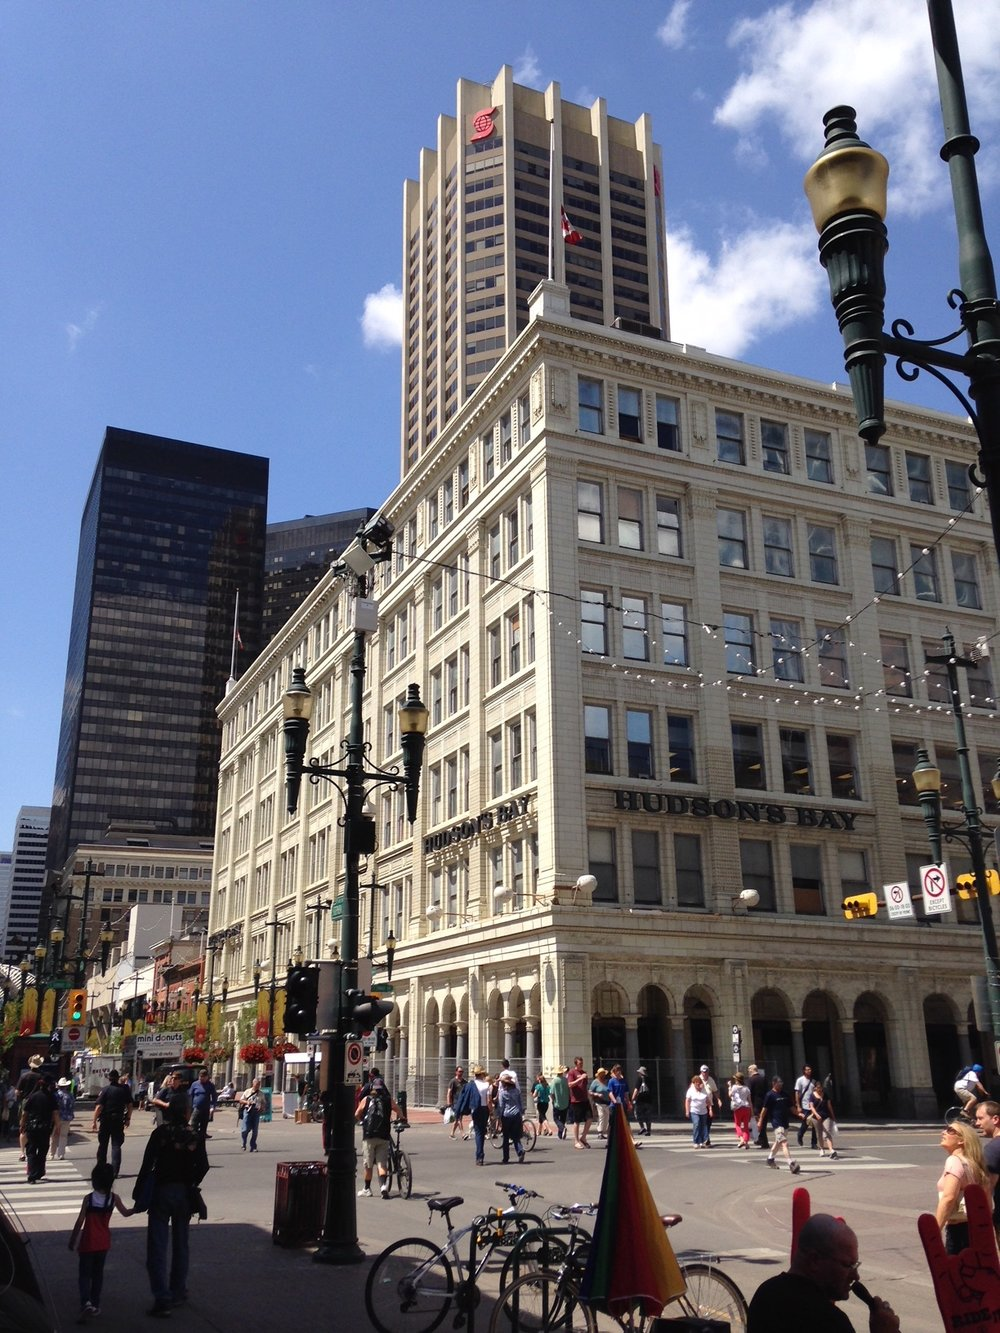 The historic Hudson's Bay department store in downtown Calgary.